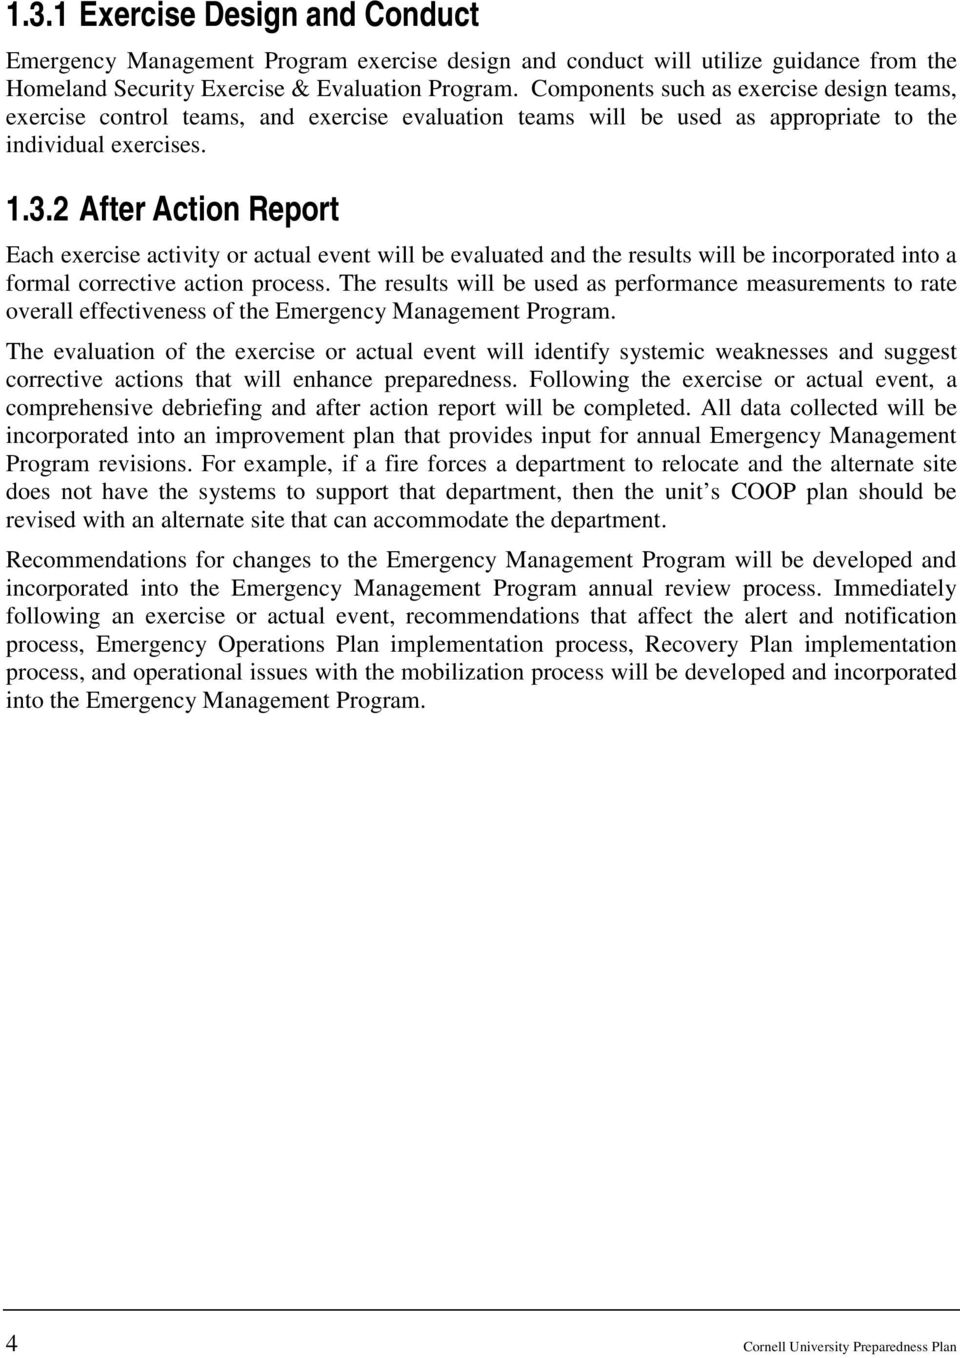 2 After Action Report Each exercise activity or actual event will be evaluated and the results will be incorporated into a formal corrective action process.